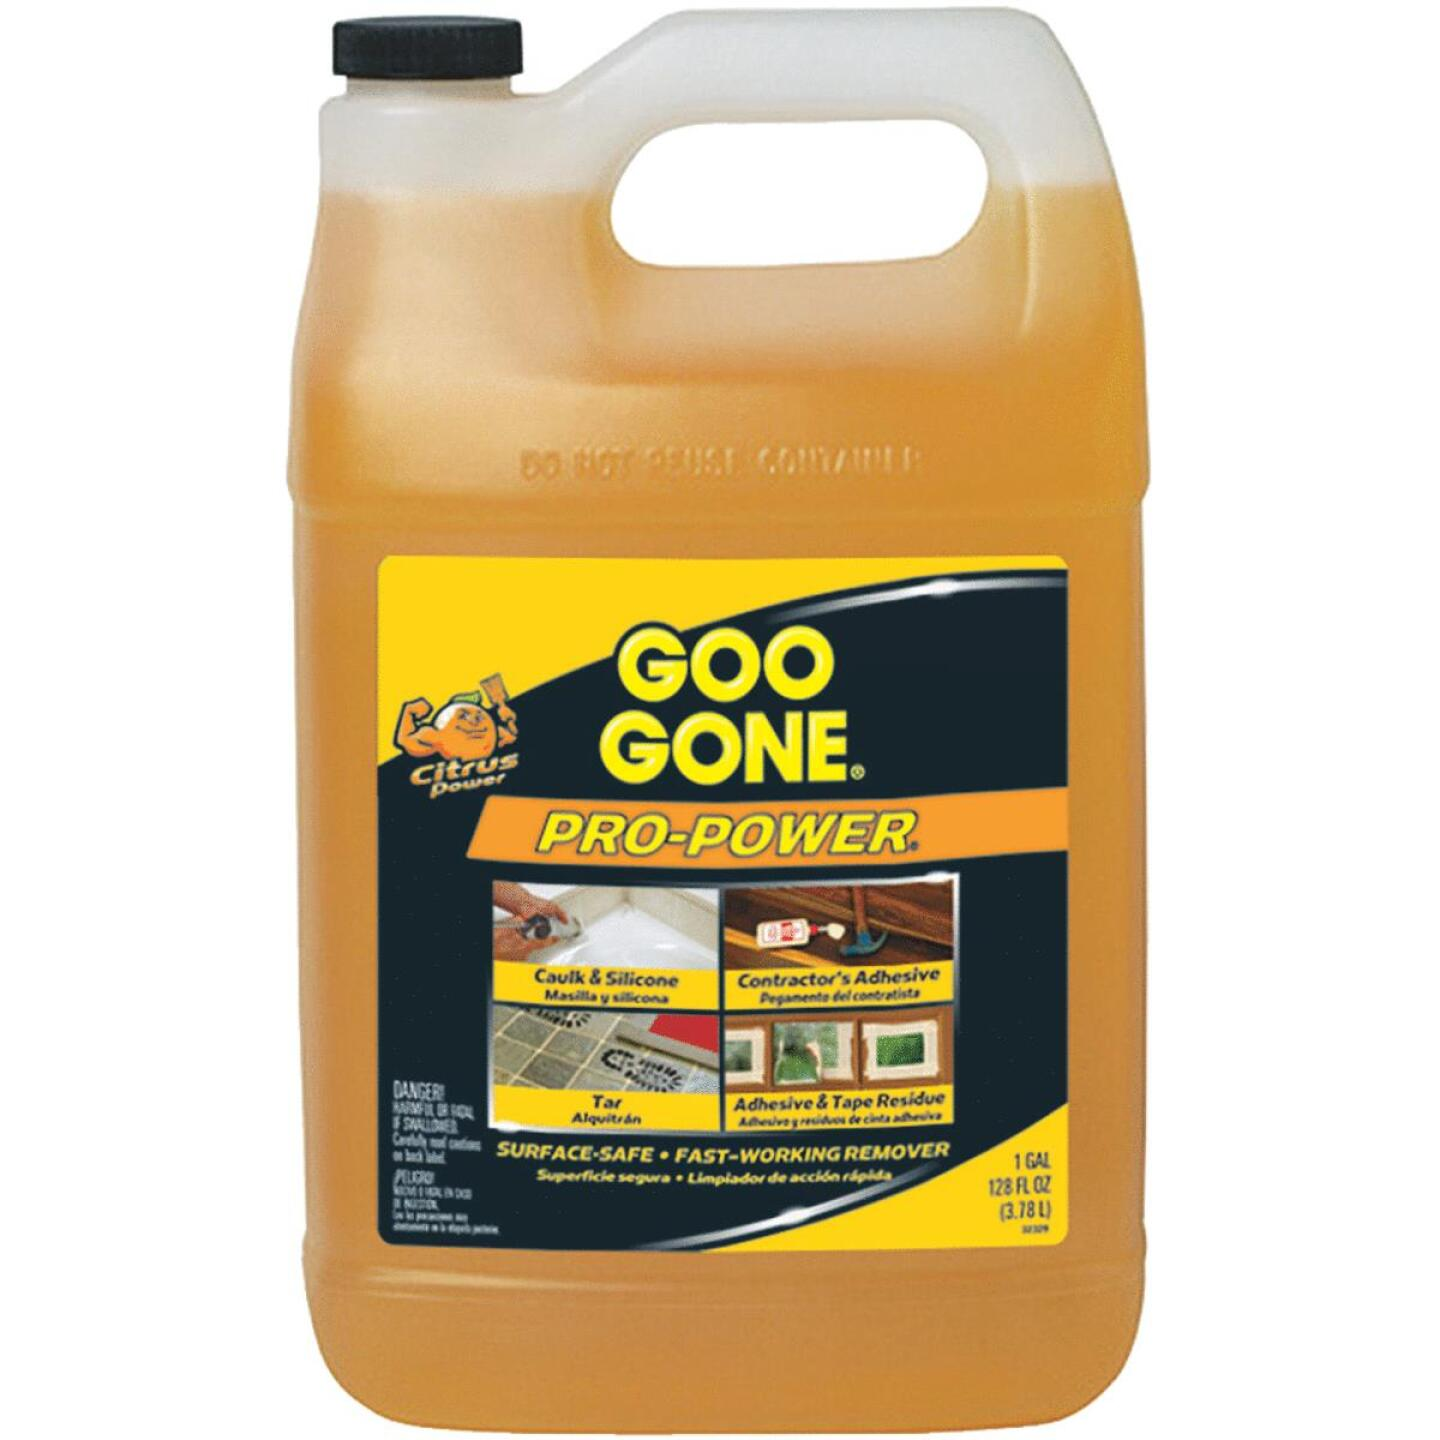 Goo Gone 1 Gal. Pro-Power Adhesive Remover Image 69